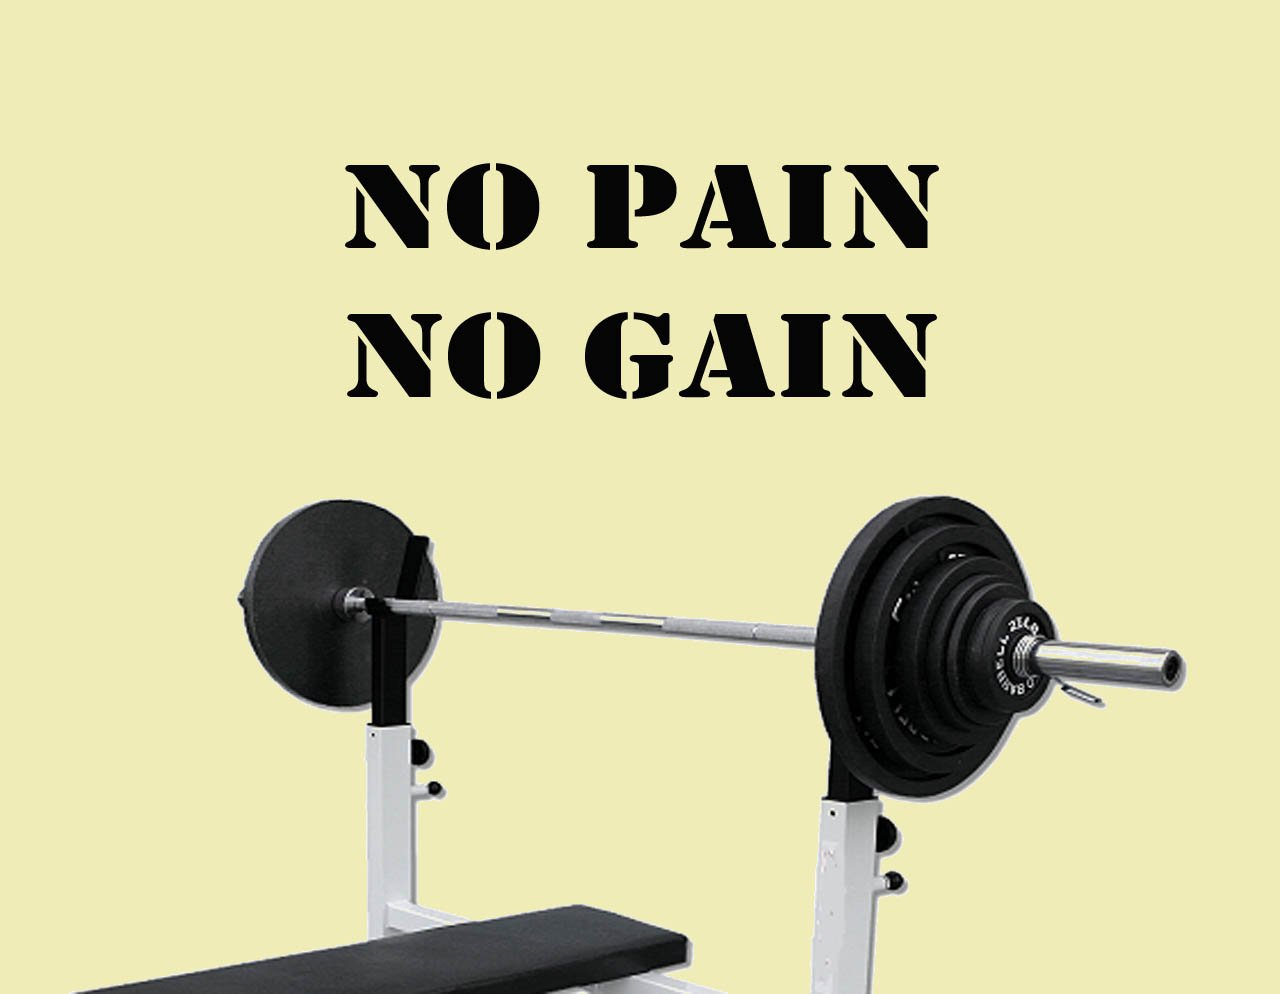 No Pain No Gain Excercise Workout Gym Health and Fitness Vinyl Lettering Wall Art Quotes Decal